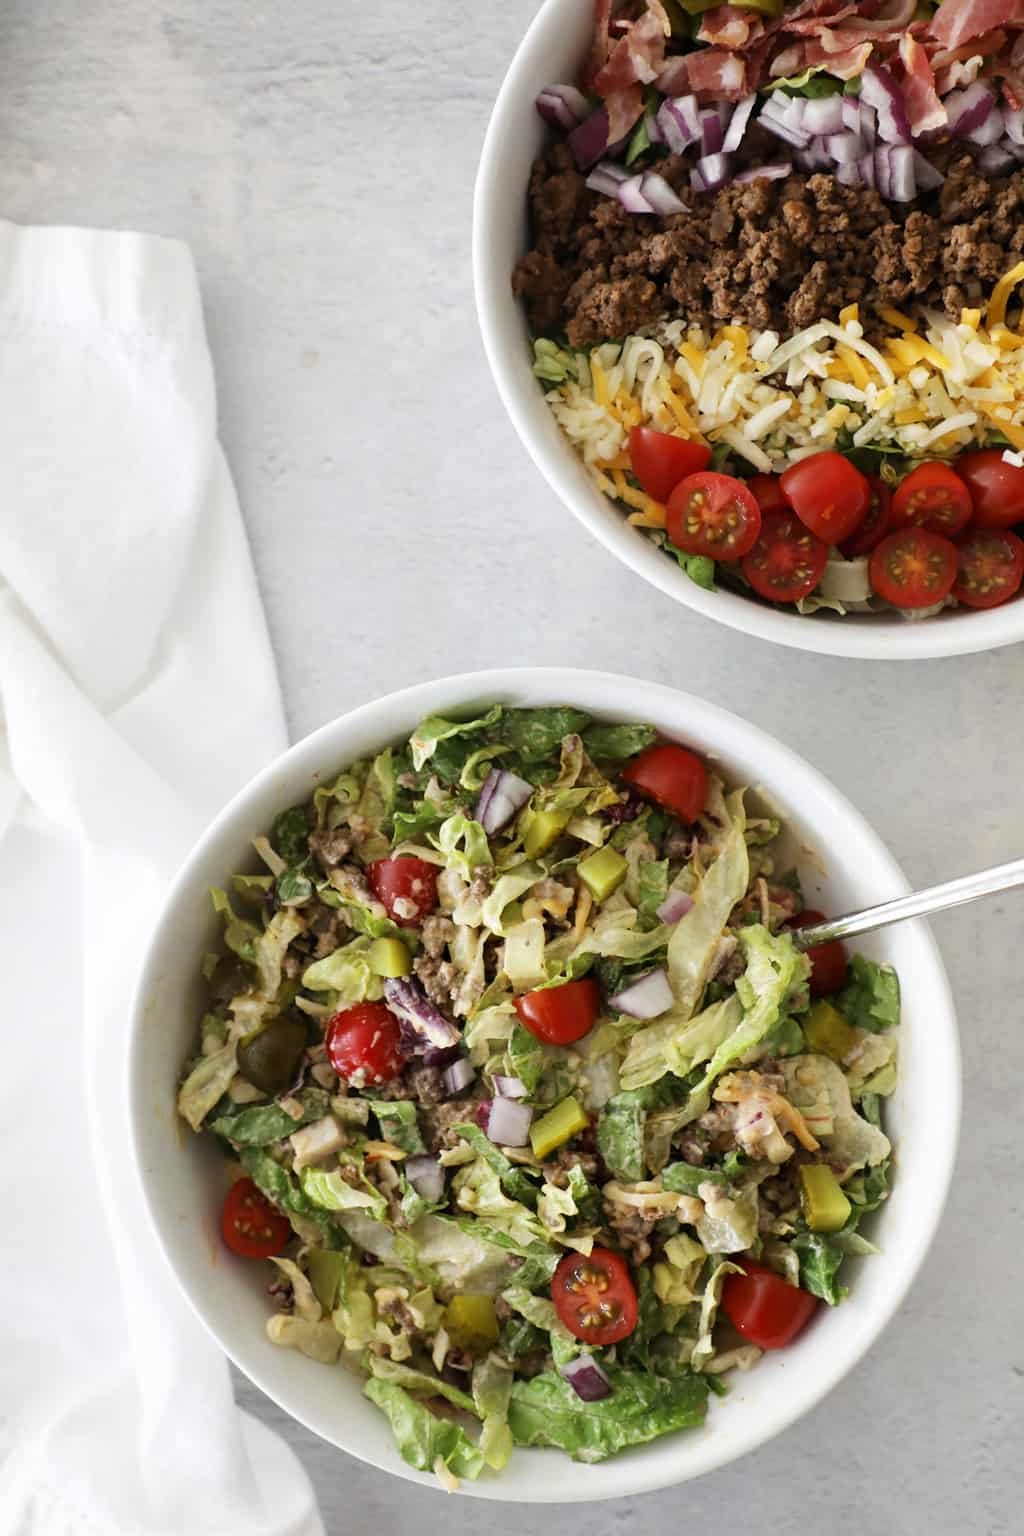 two hamburger salads in white bowls on a white marble countertop with a white tea towel